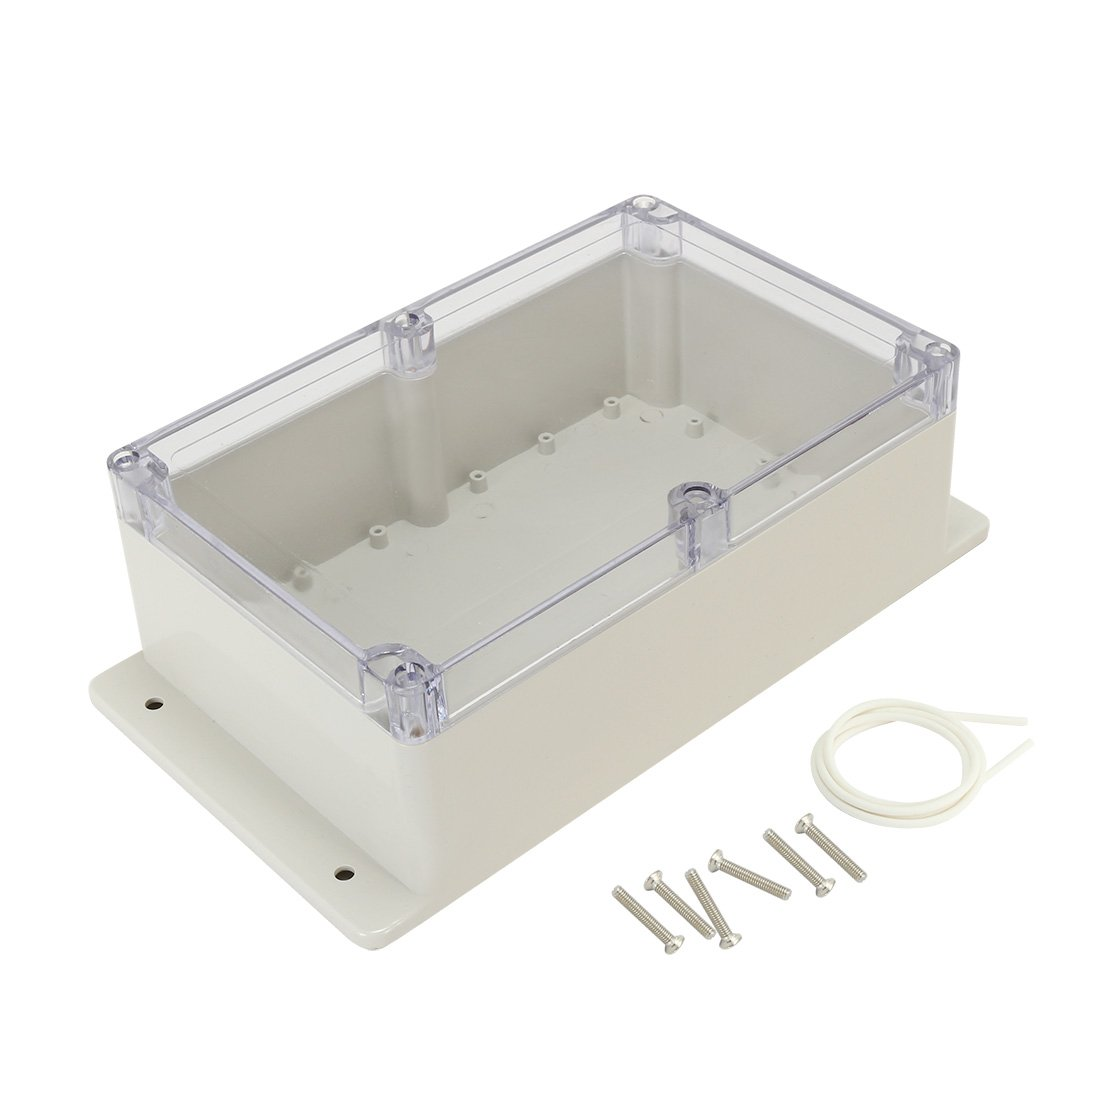 uxcell 9x5.9x3.4(230mmx150mmx87mm) ABS Junction Box Universal Project Enclosure w PC Transparent Cover a17031600ux1146